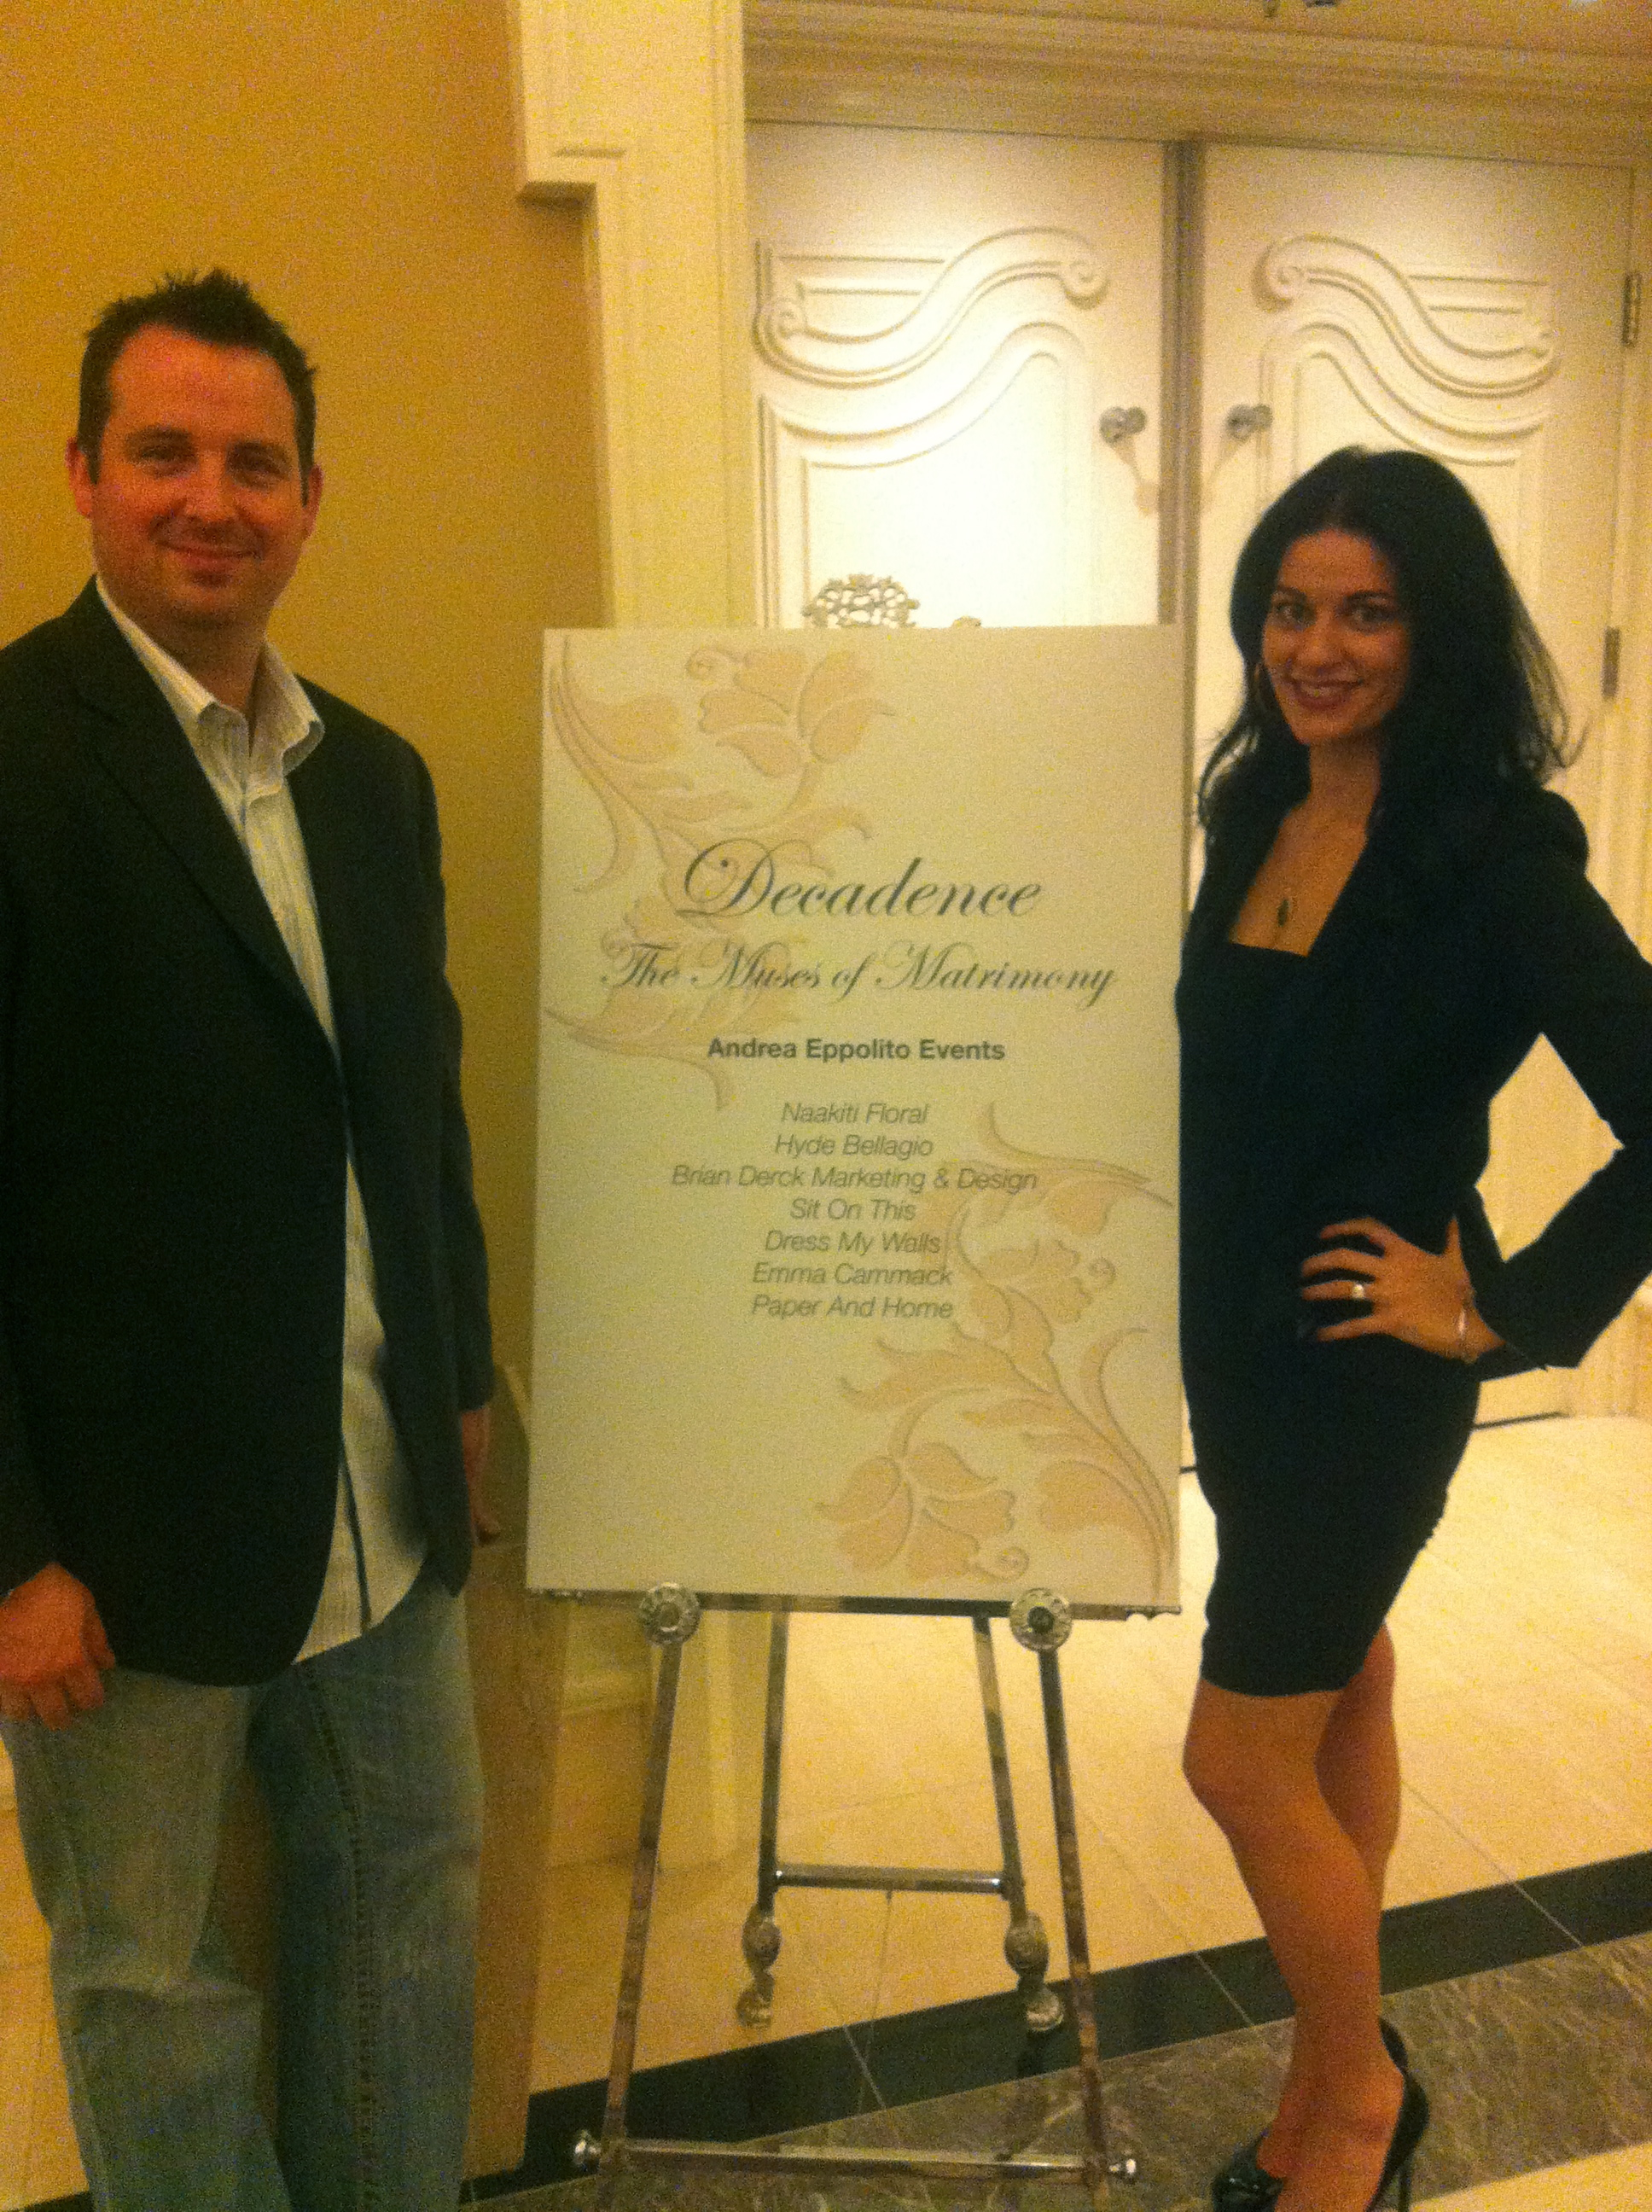 Behind the Scenes with my iPhone! Las Vegas Wedding Planner Andrea Eppolito with Brian Derck ~ Owner of Brian Derck Marketing & Design and sponsor!